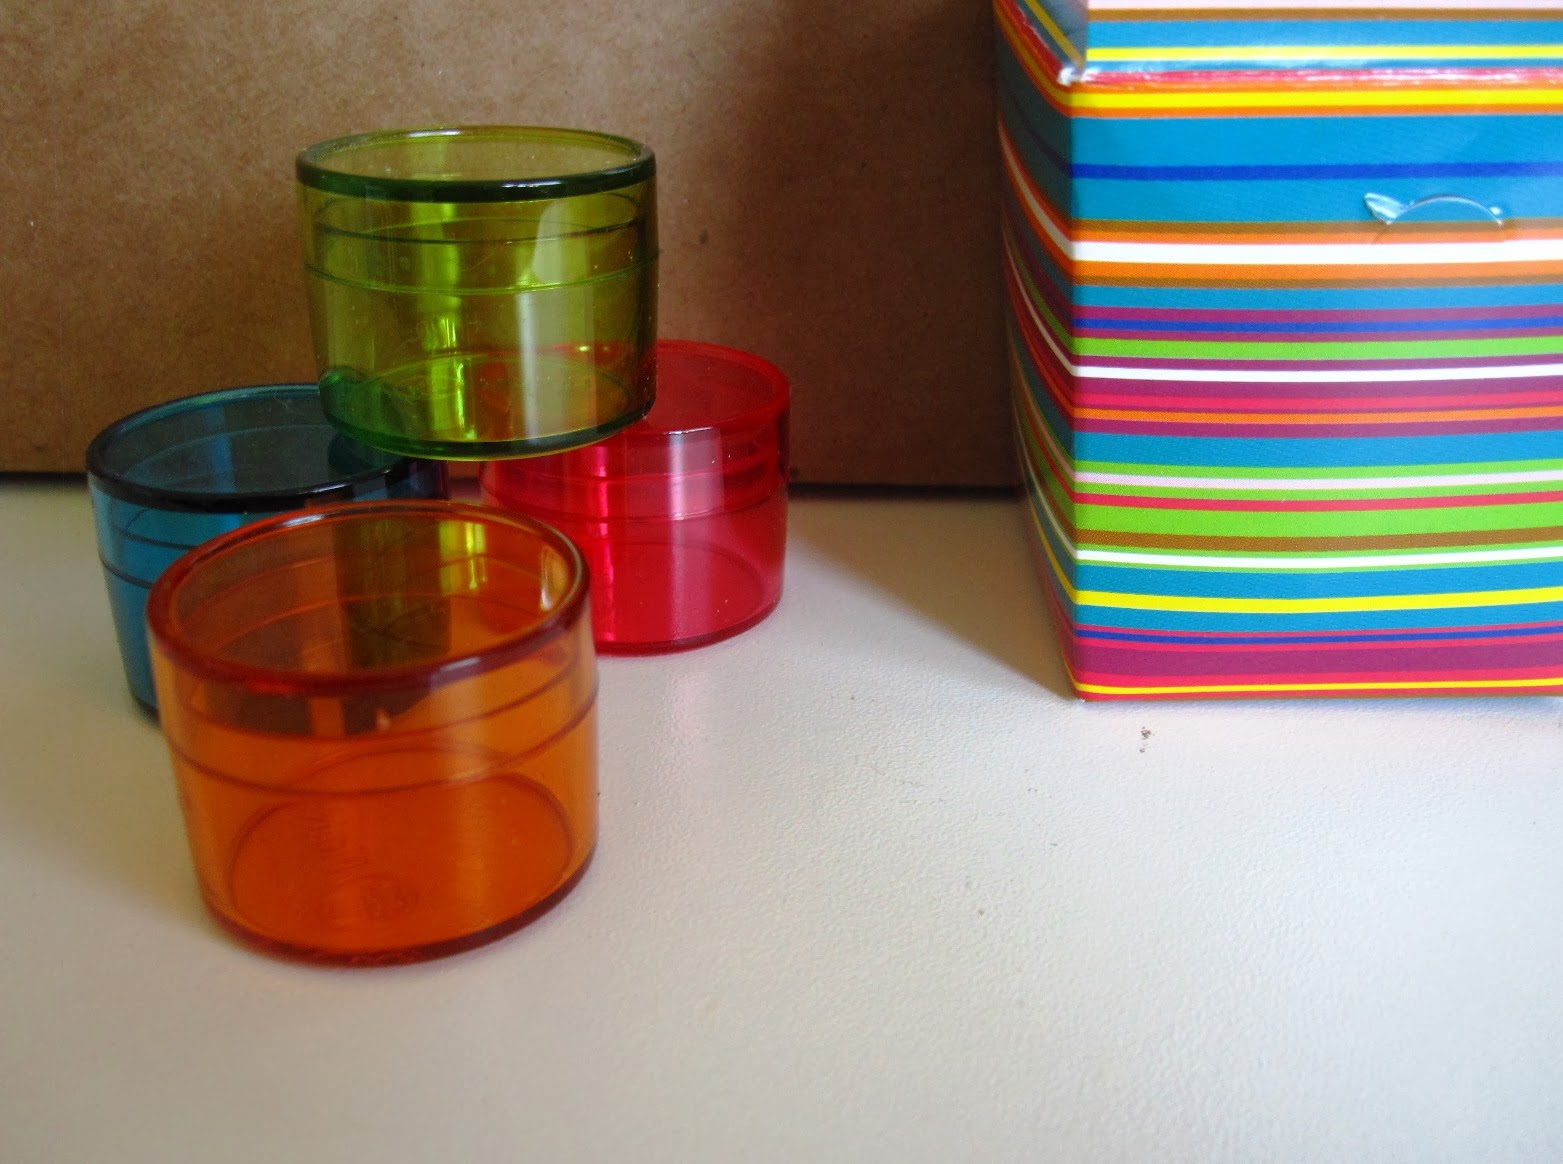 Four small coloured see-through miniature storage containers